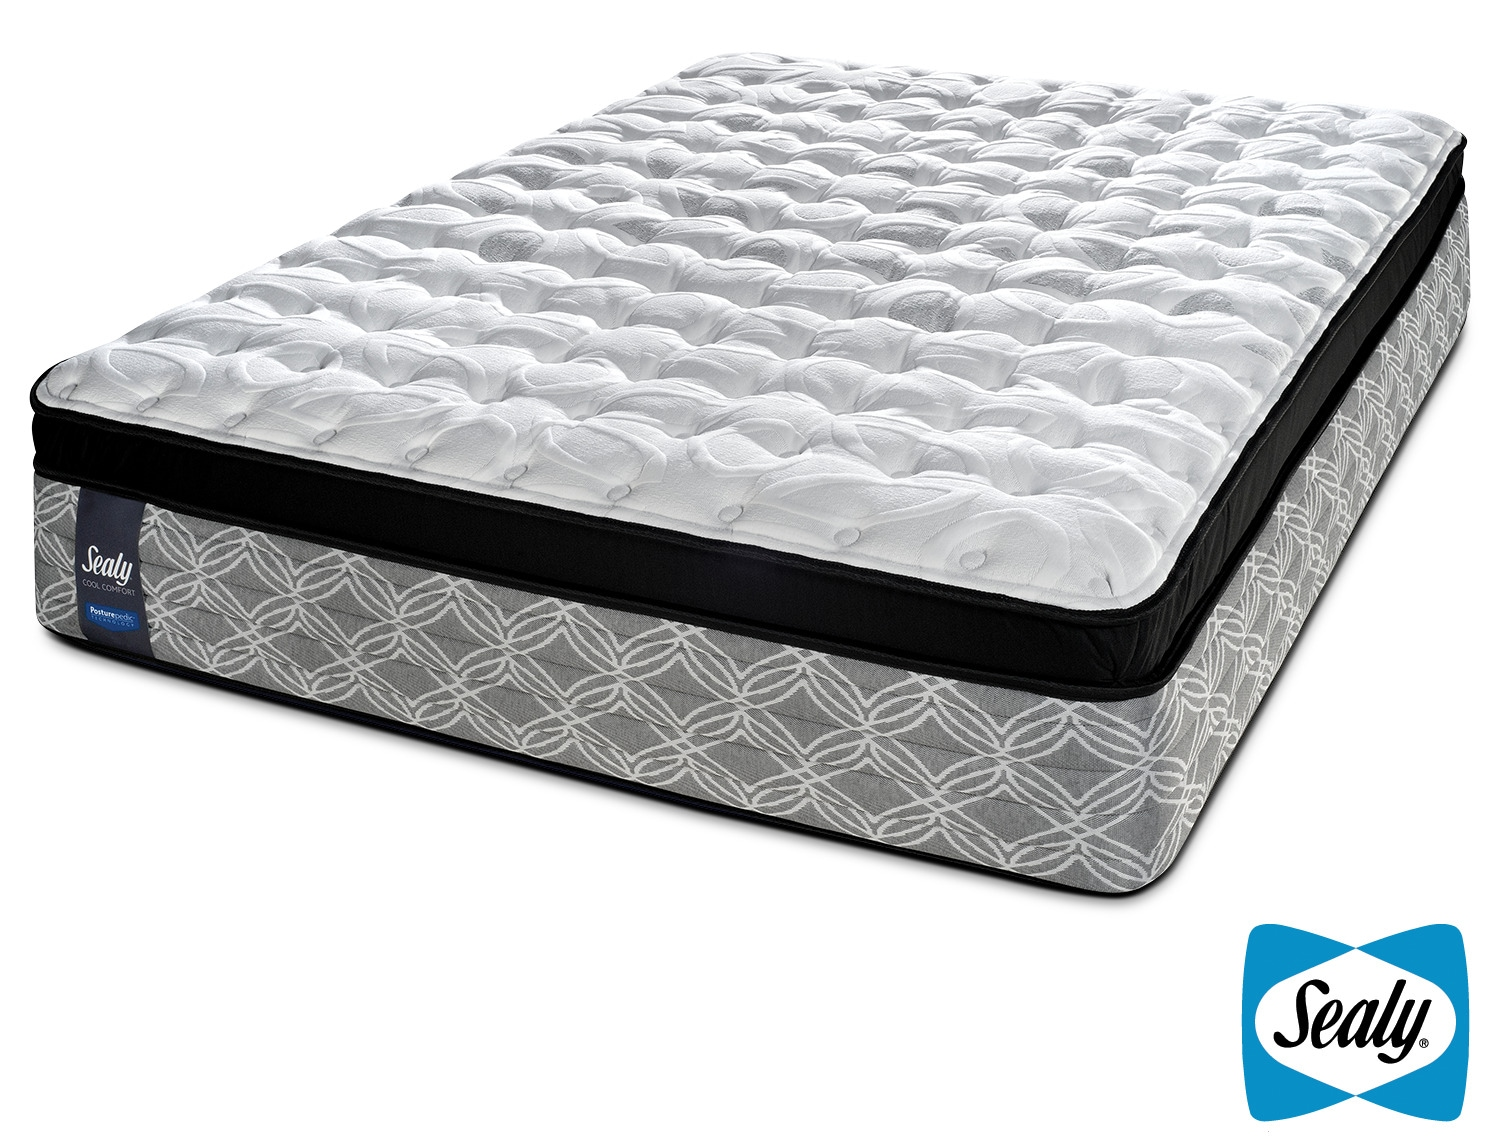 Sealy Sundown Plush Queen Mattress